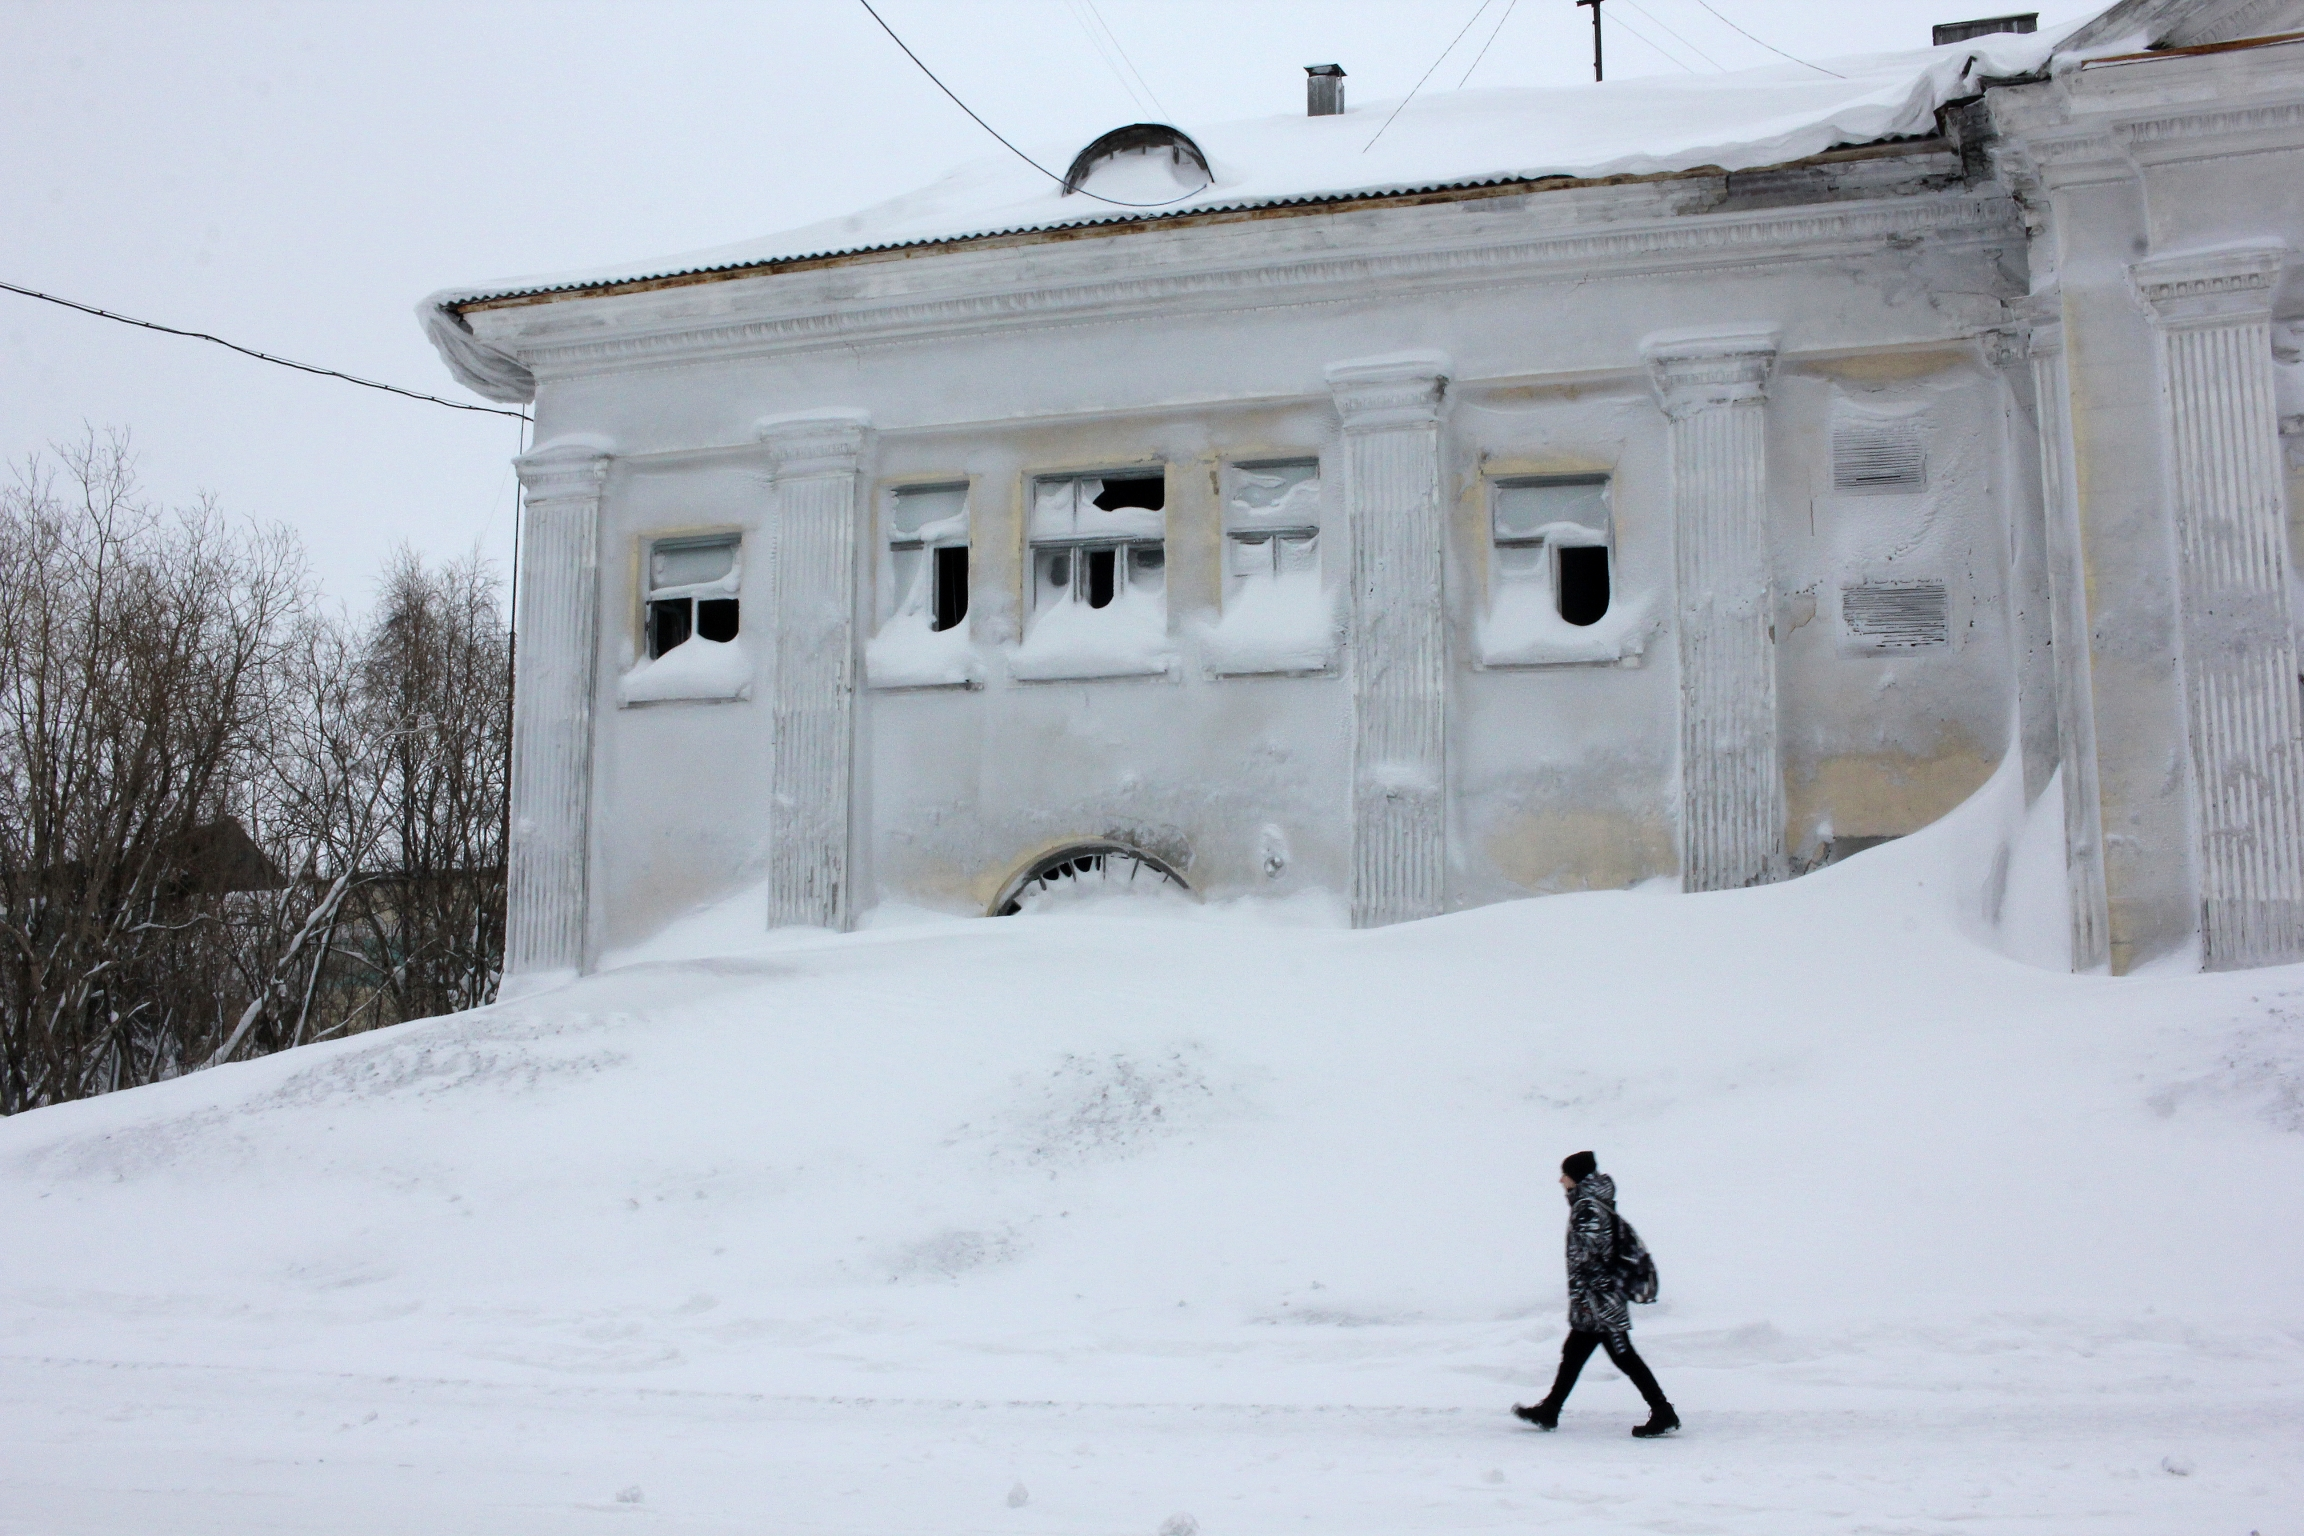 A man walks past an abandoned building in the snow